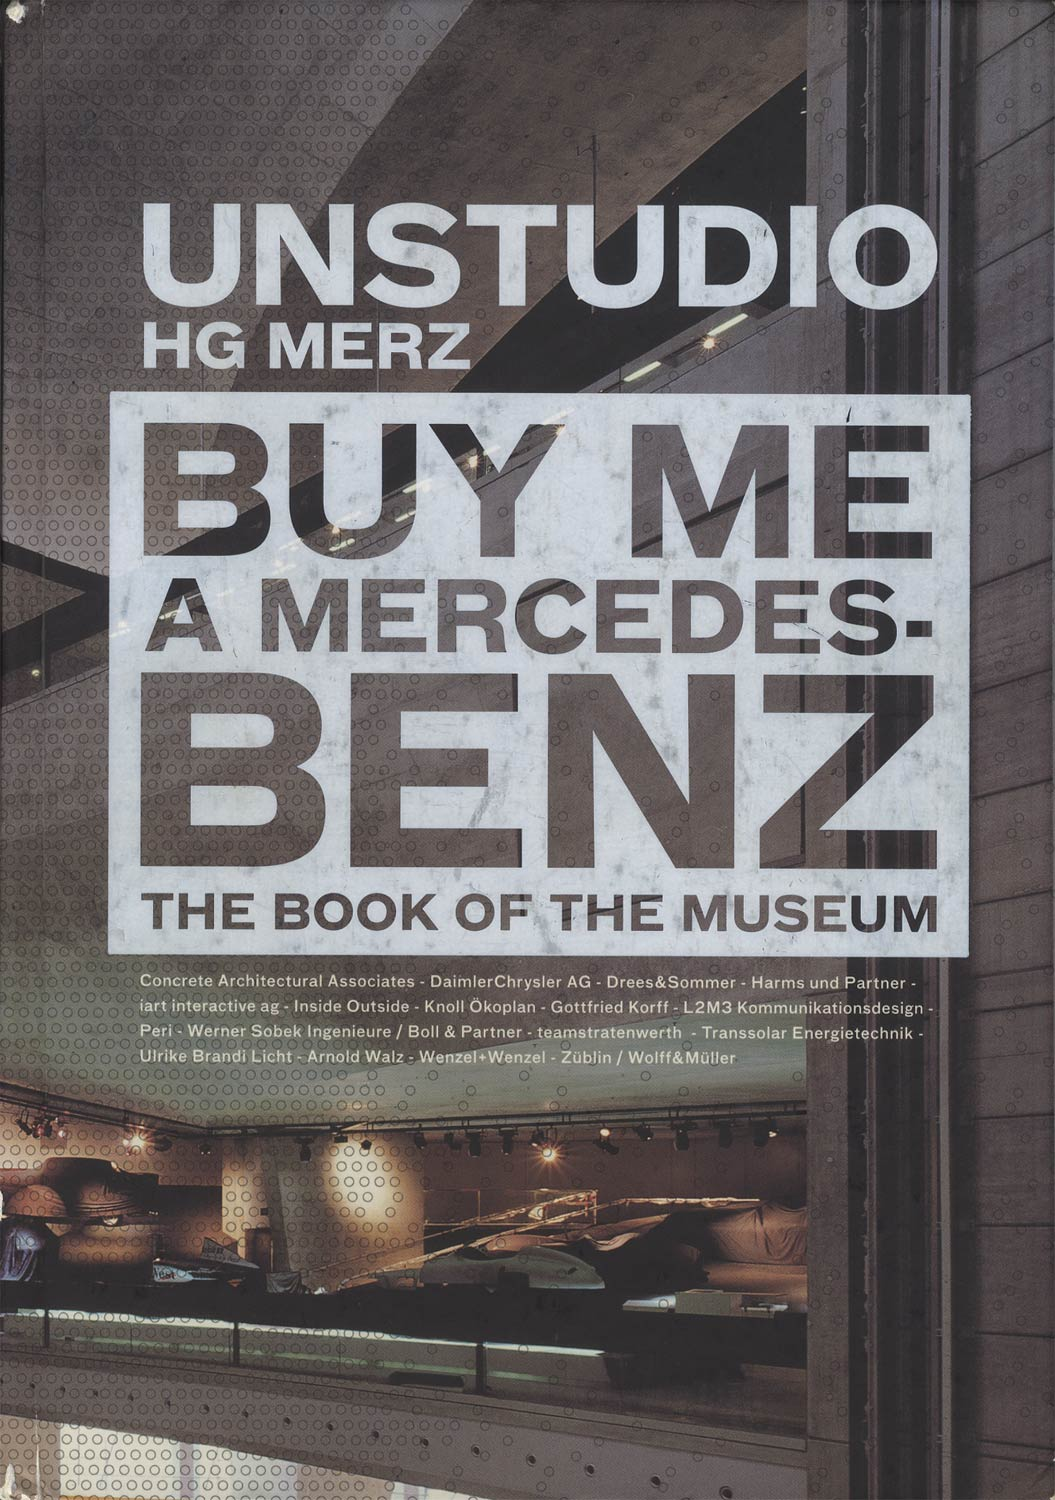 UN STUDIO HG MERZ : BUY ME A MERCEDES-BENZ The Book of the Museum